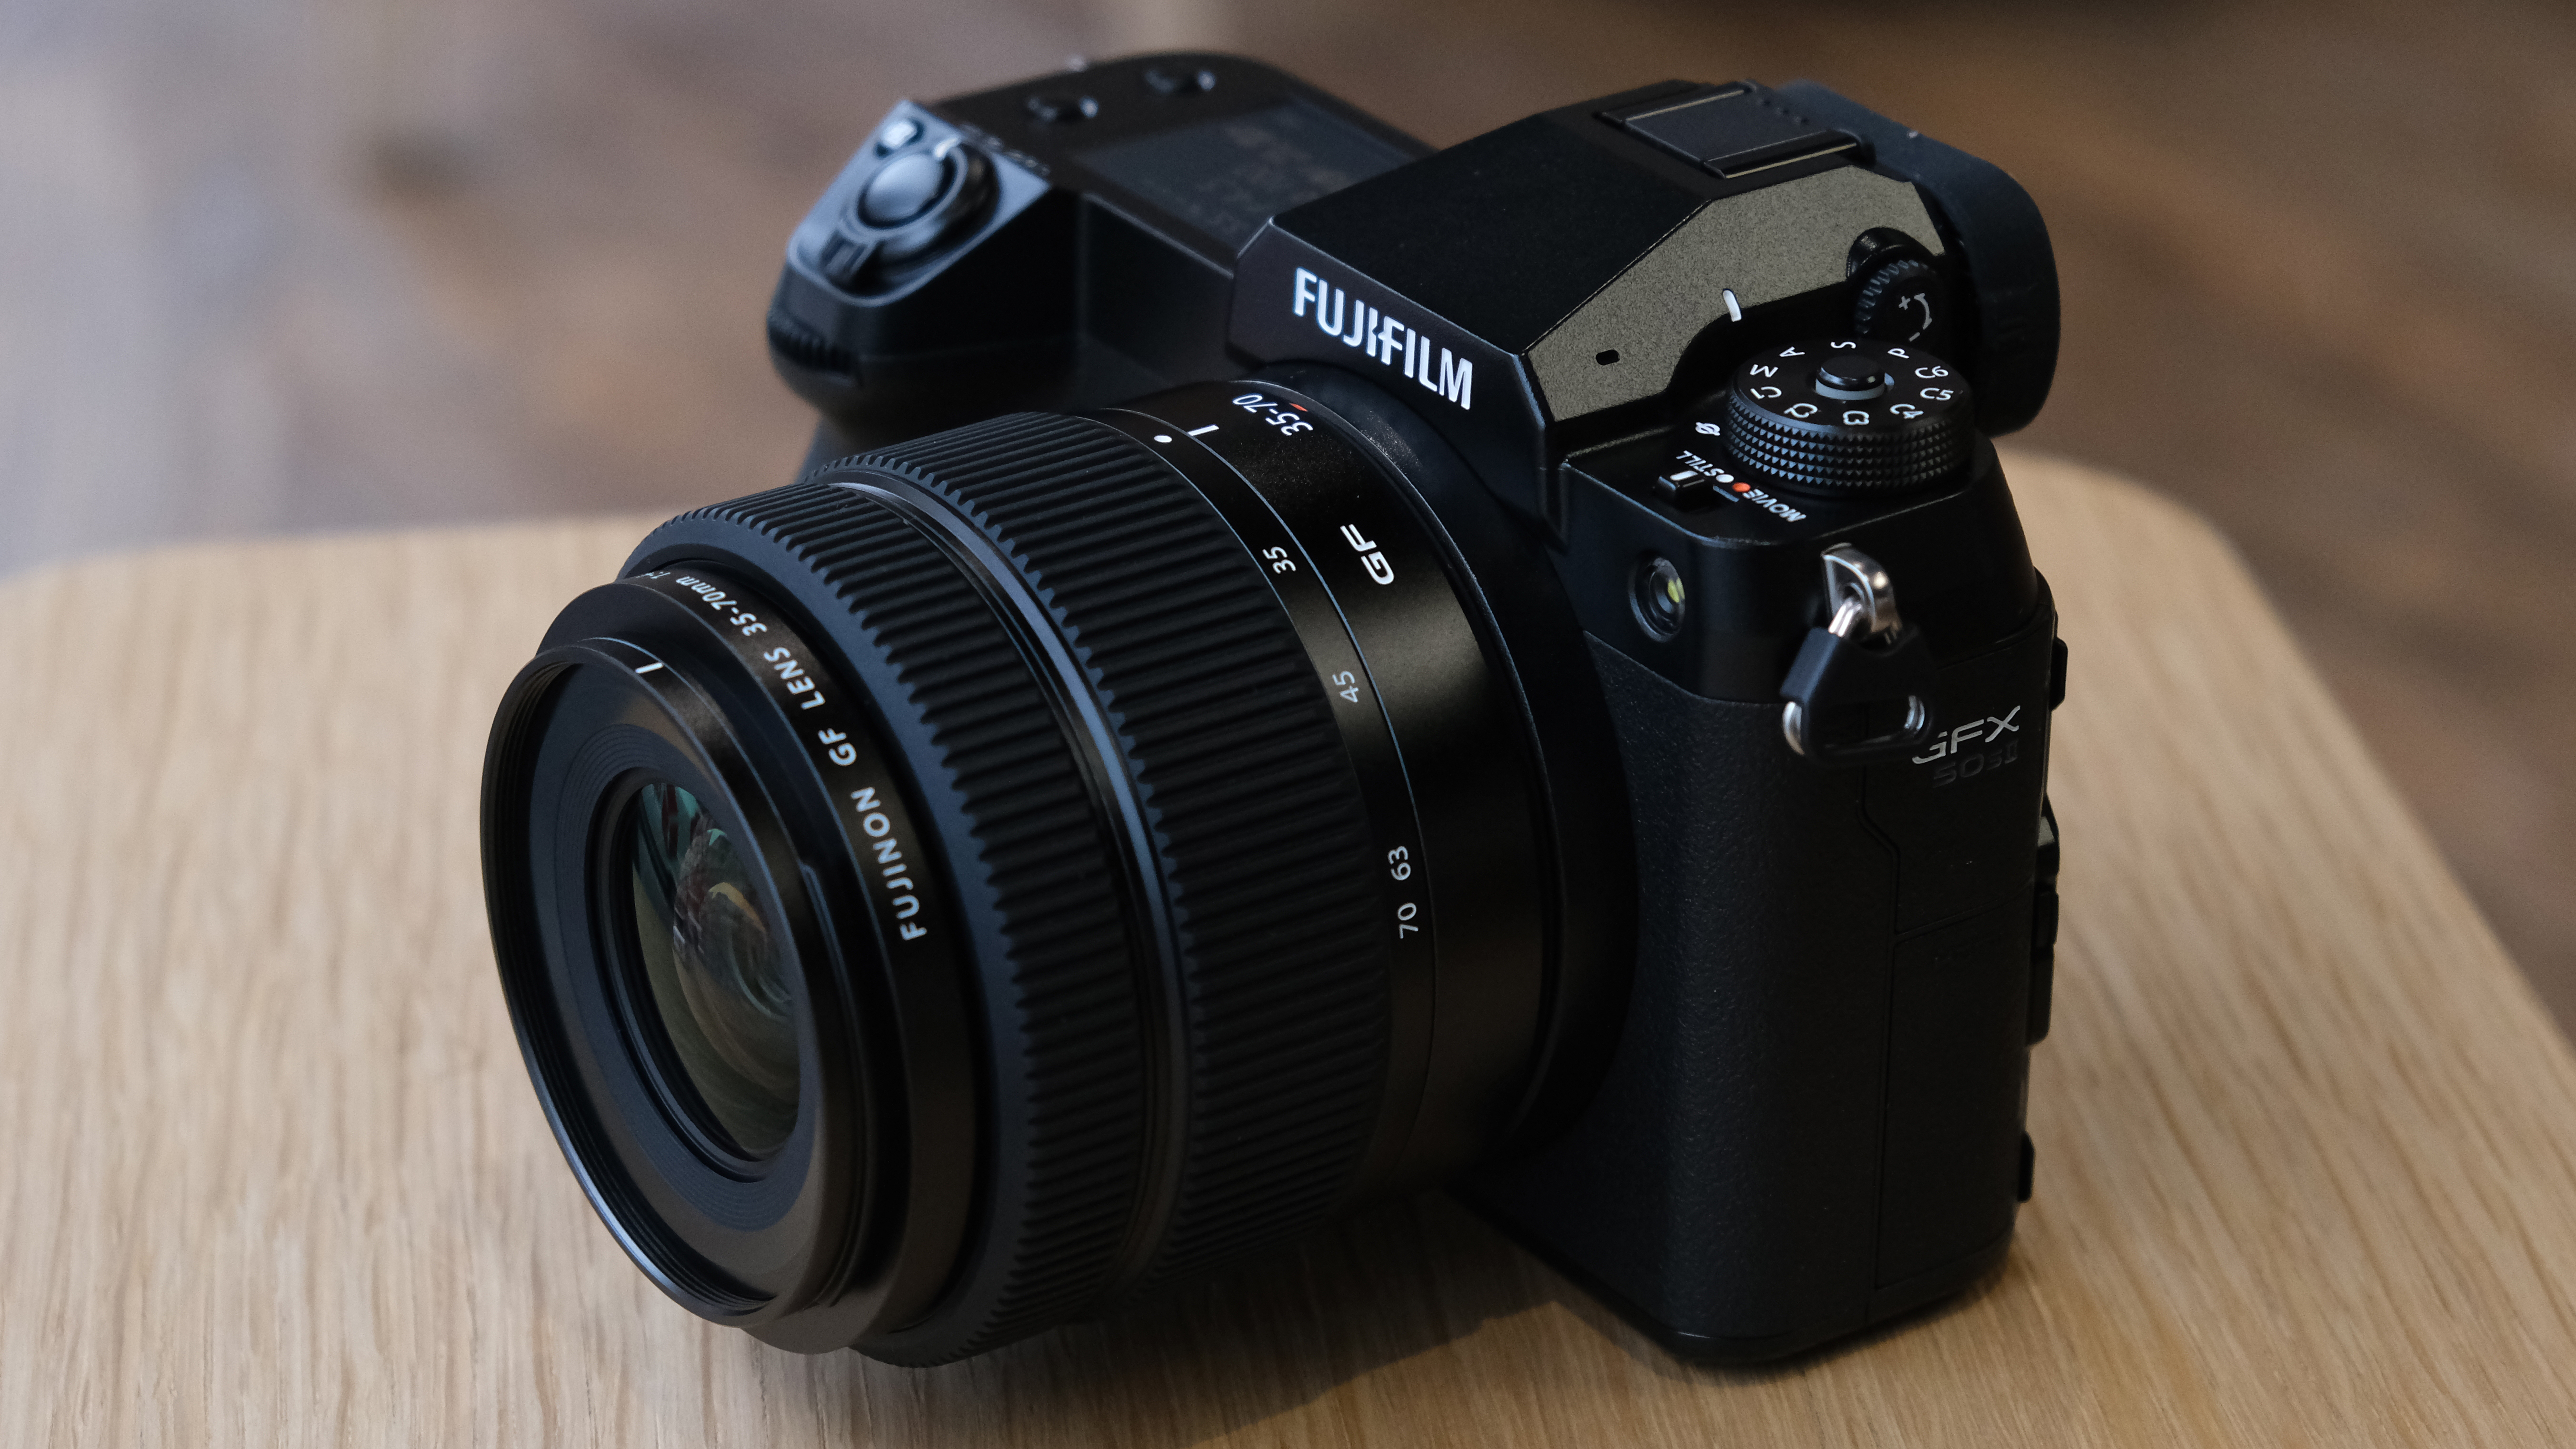 The Fujifilm GFX50S II on a wooden table